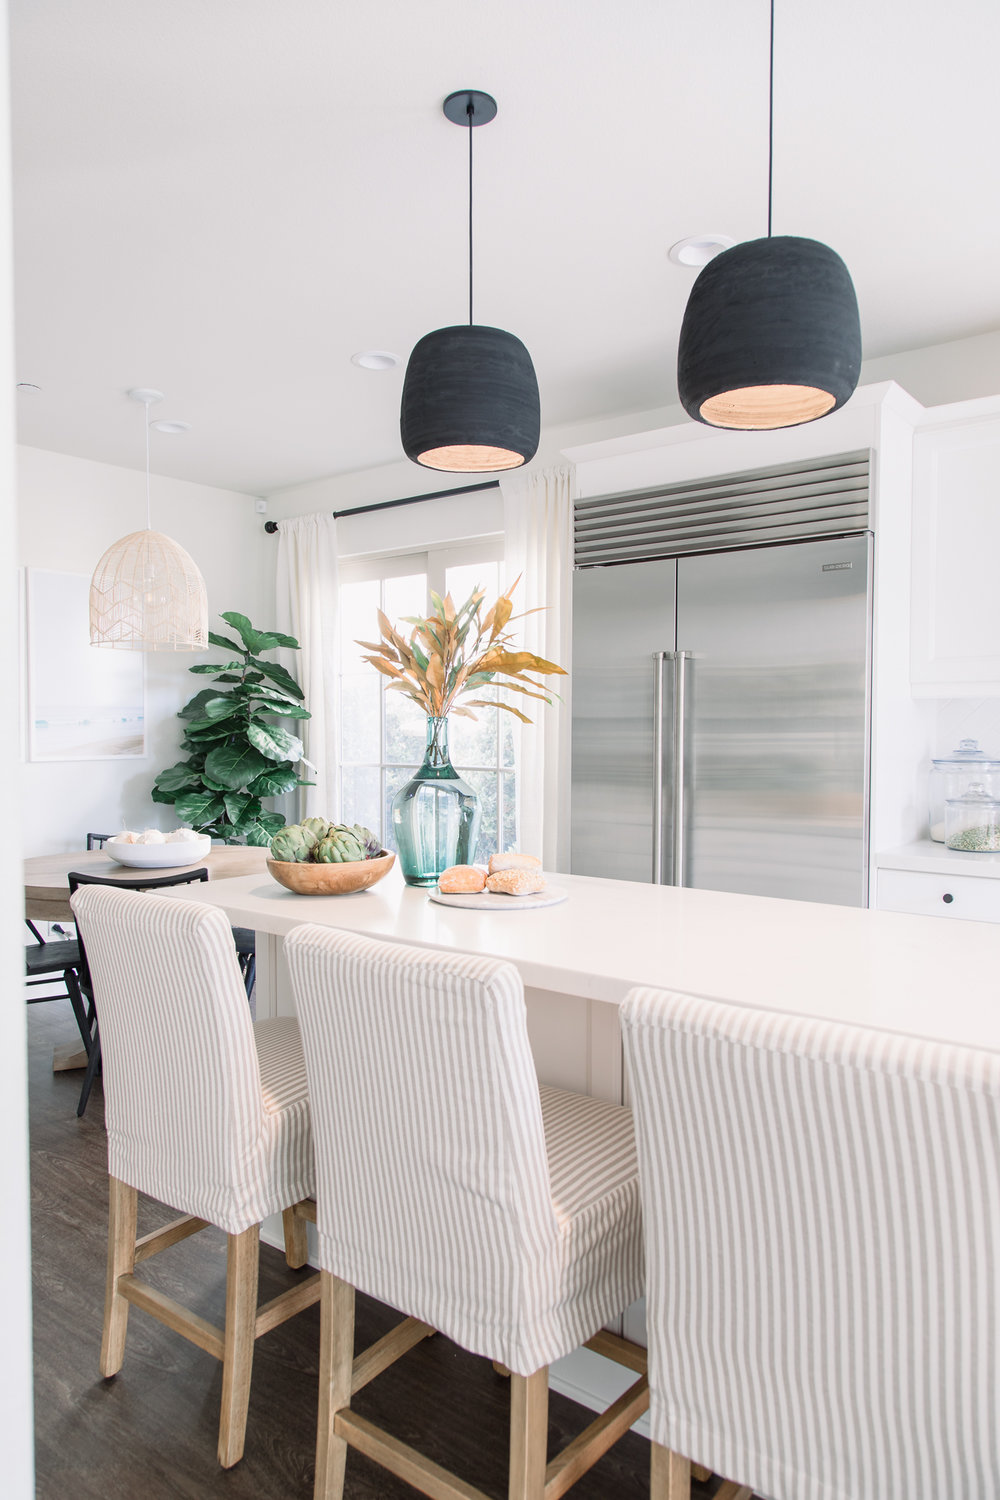 The striped slip-covered bar stools are reminiscent of beach chairs, while the countertops reflect the color of white sand.